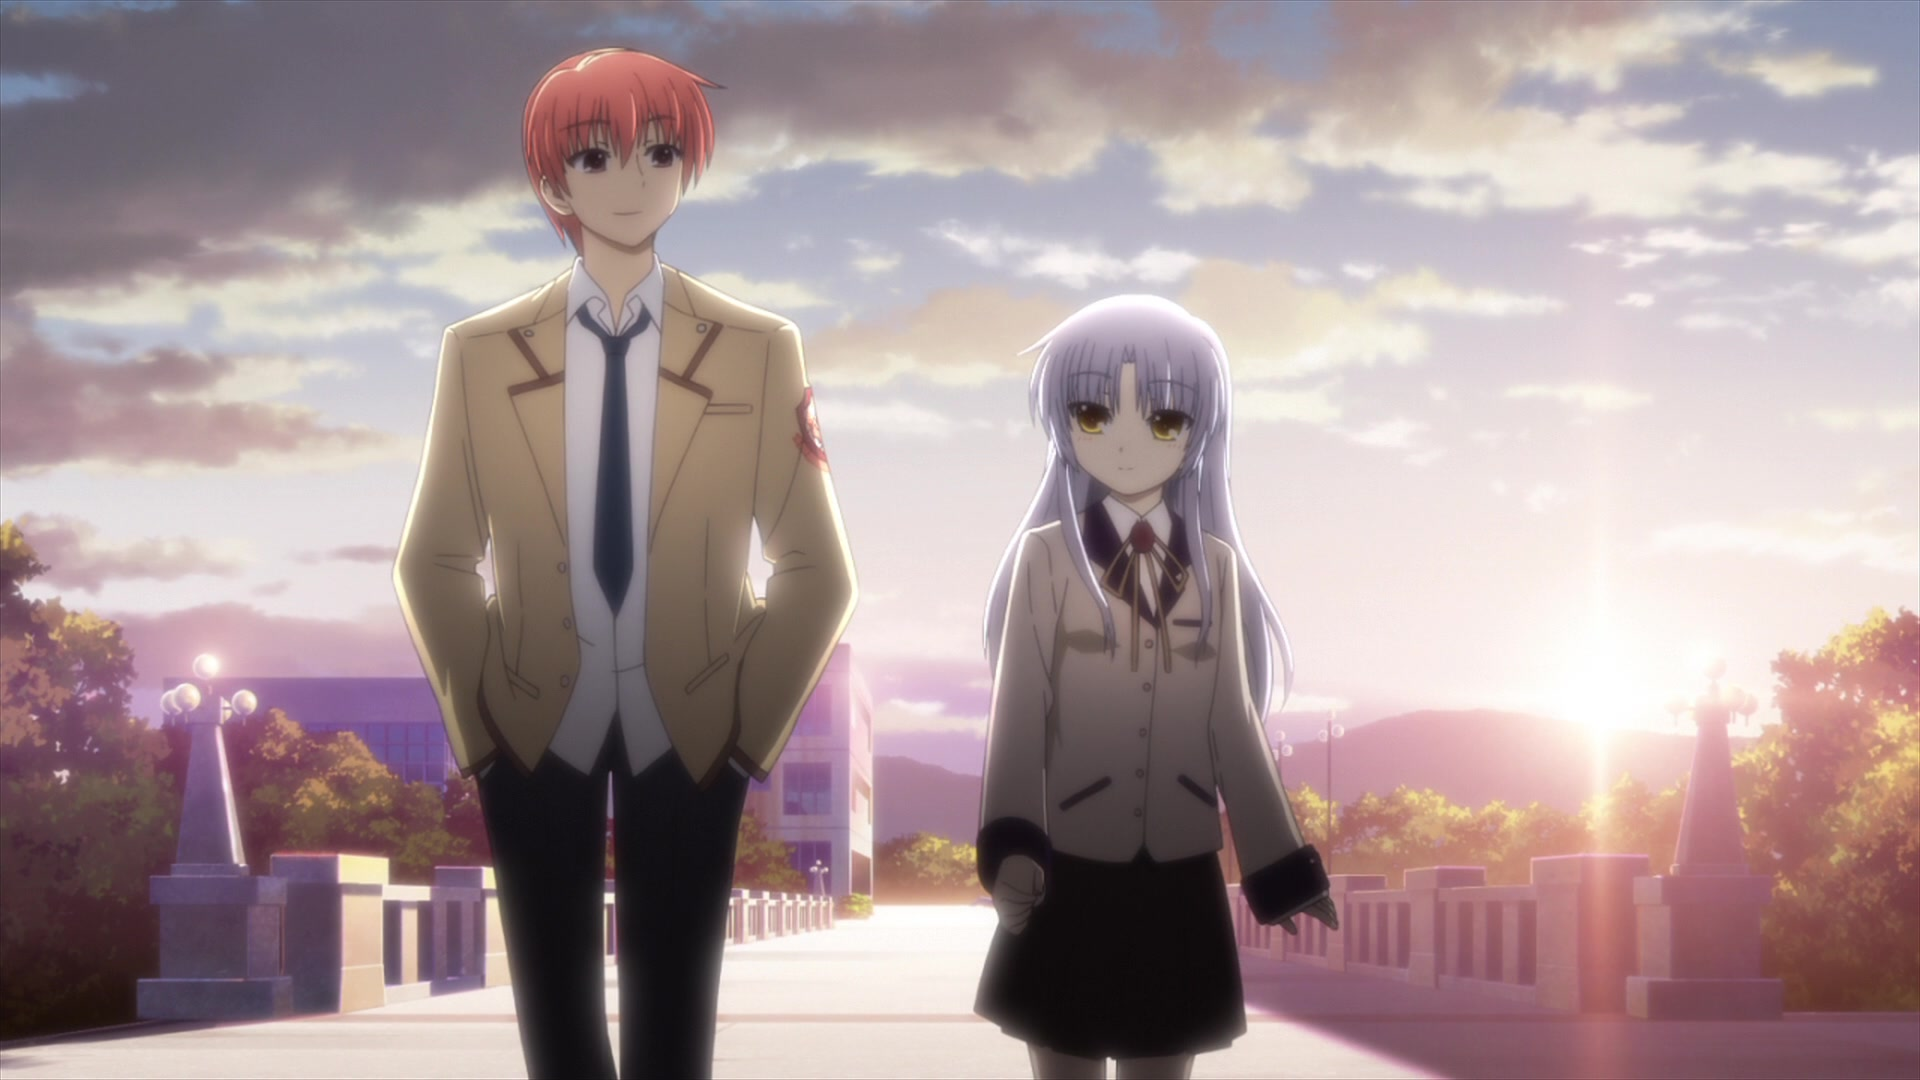 Angel Beats!: An Anime About The Afterlife Influenced By Different ...